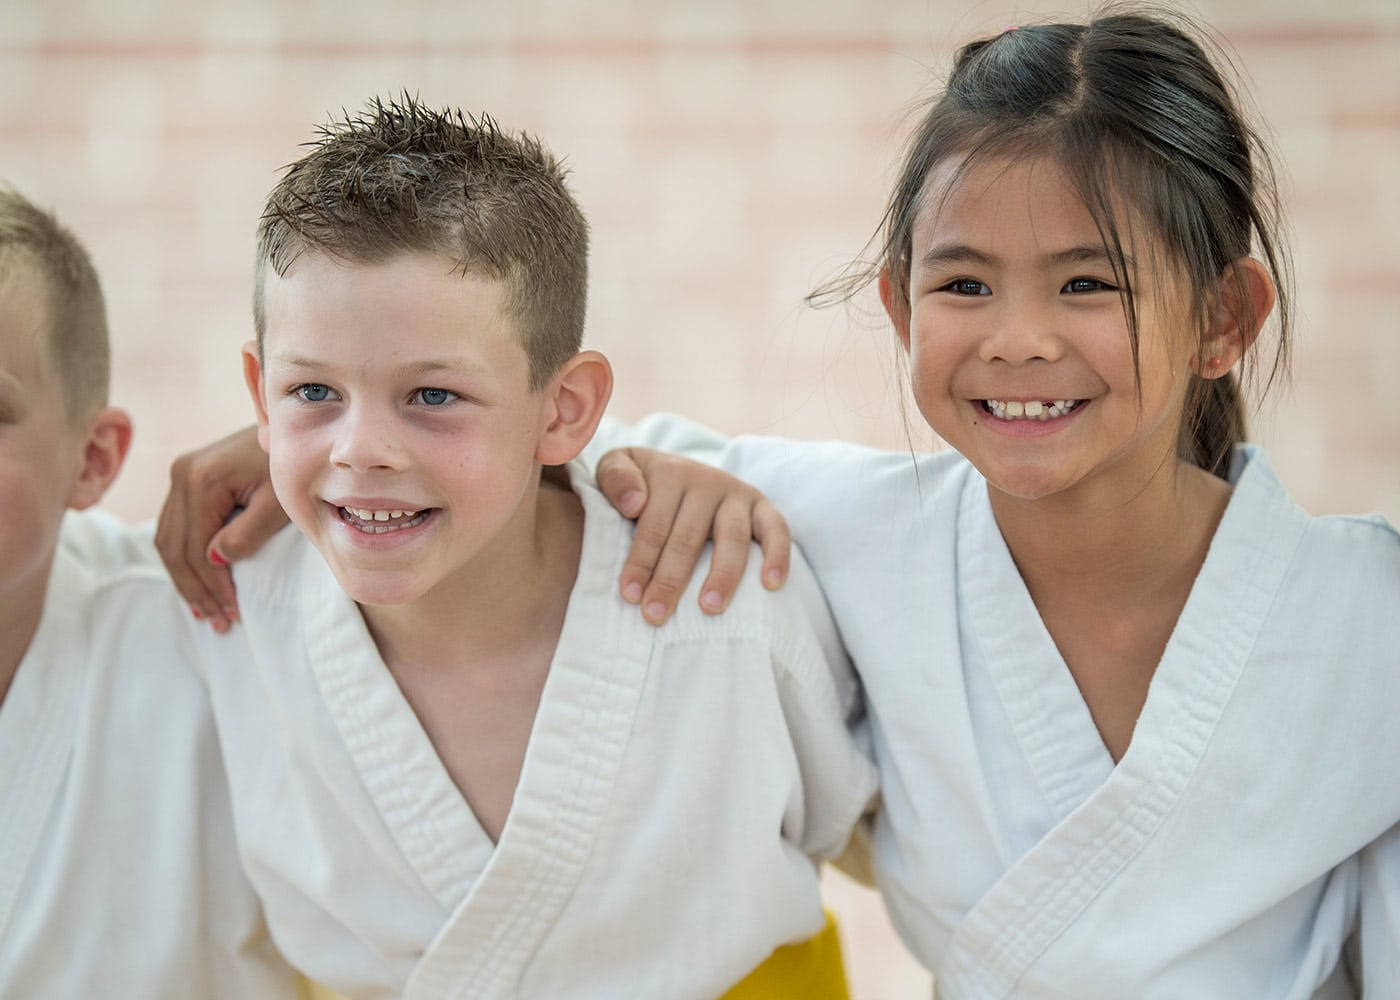 Two children at martial arts practice